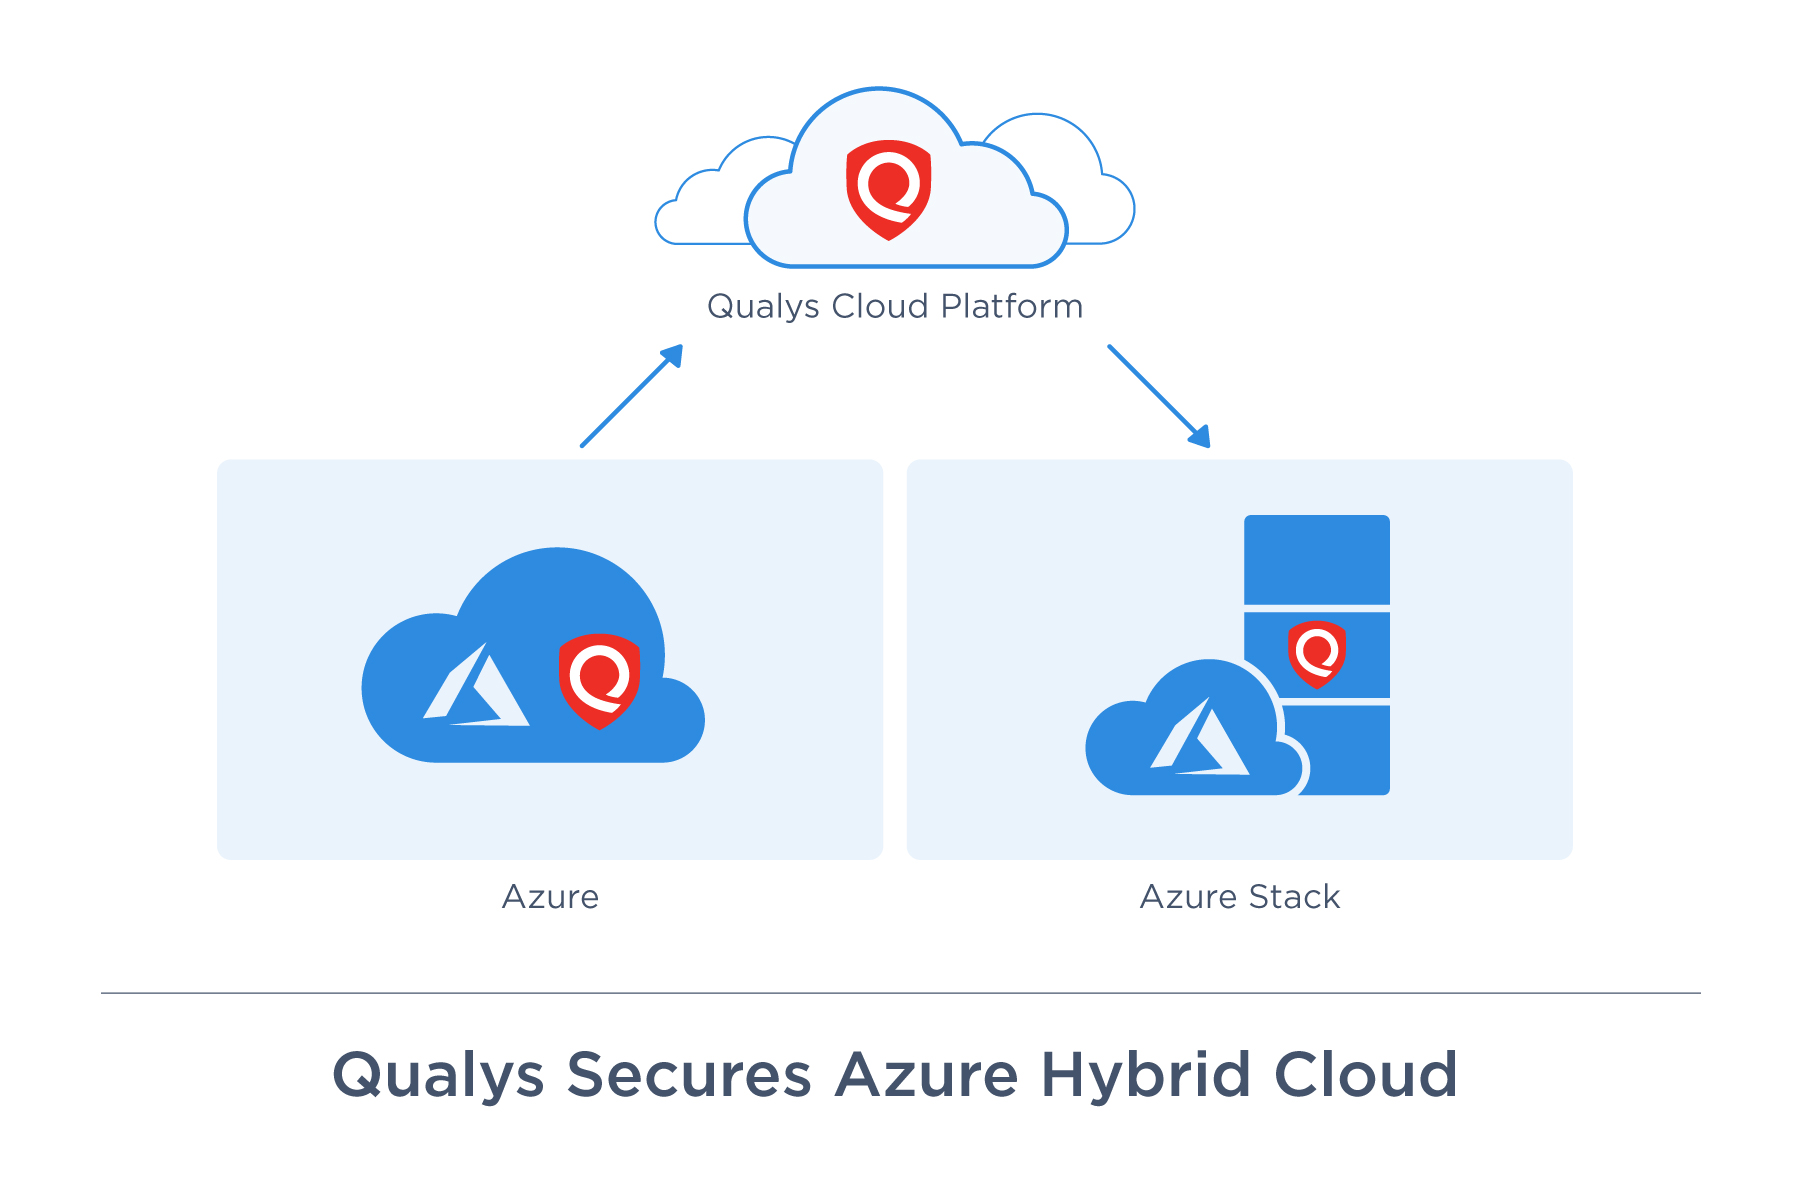 Qualys Delivers Security Built into Microsoft Azure's Hybrid